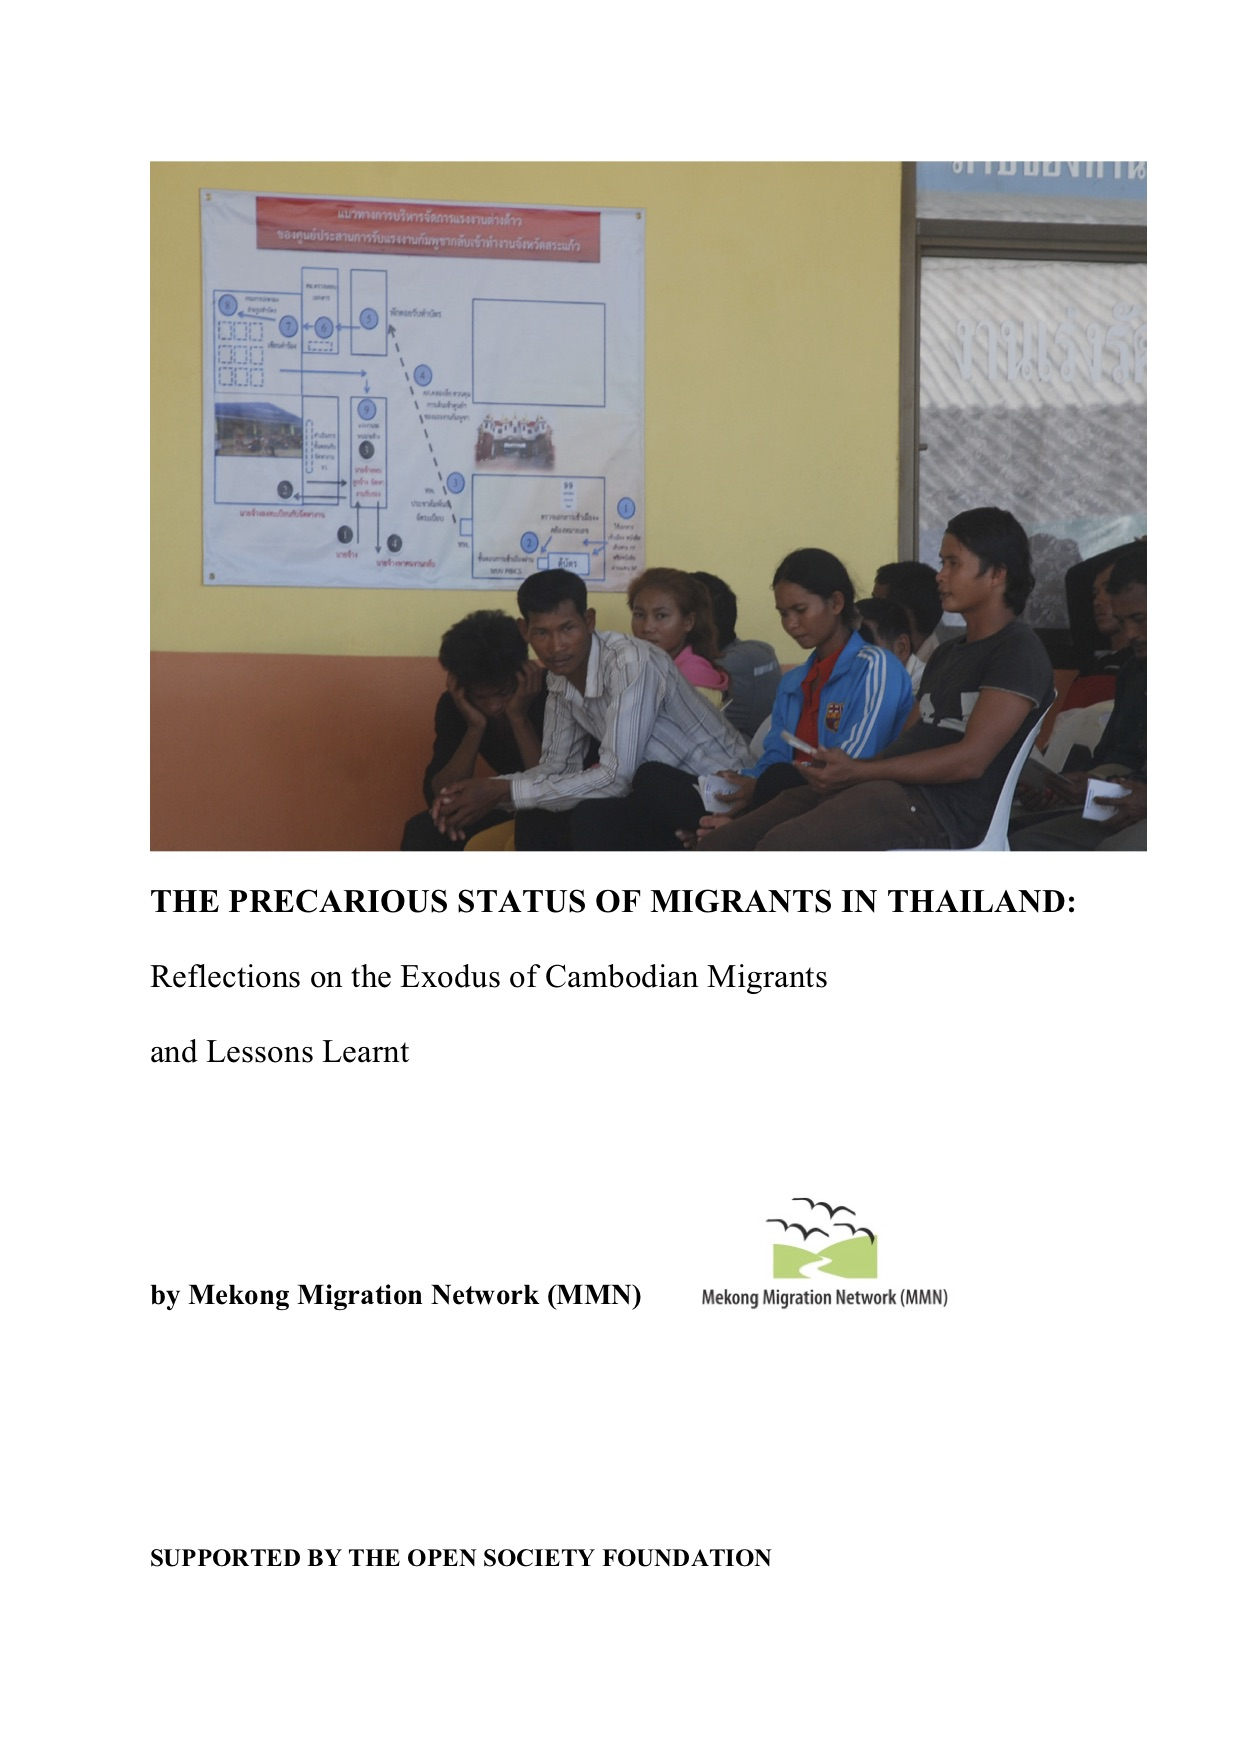 FINAL-REPORT-The-precarious-status-of-migrants-in-Thailand